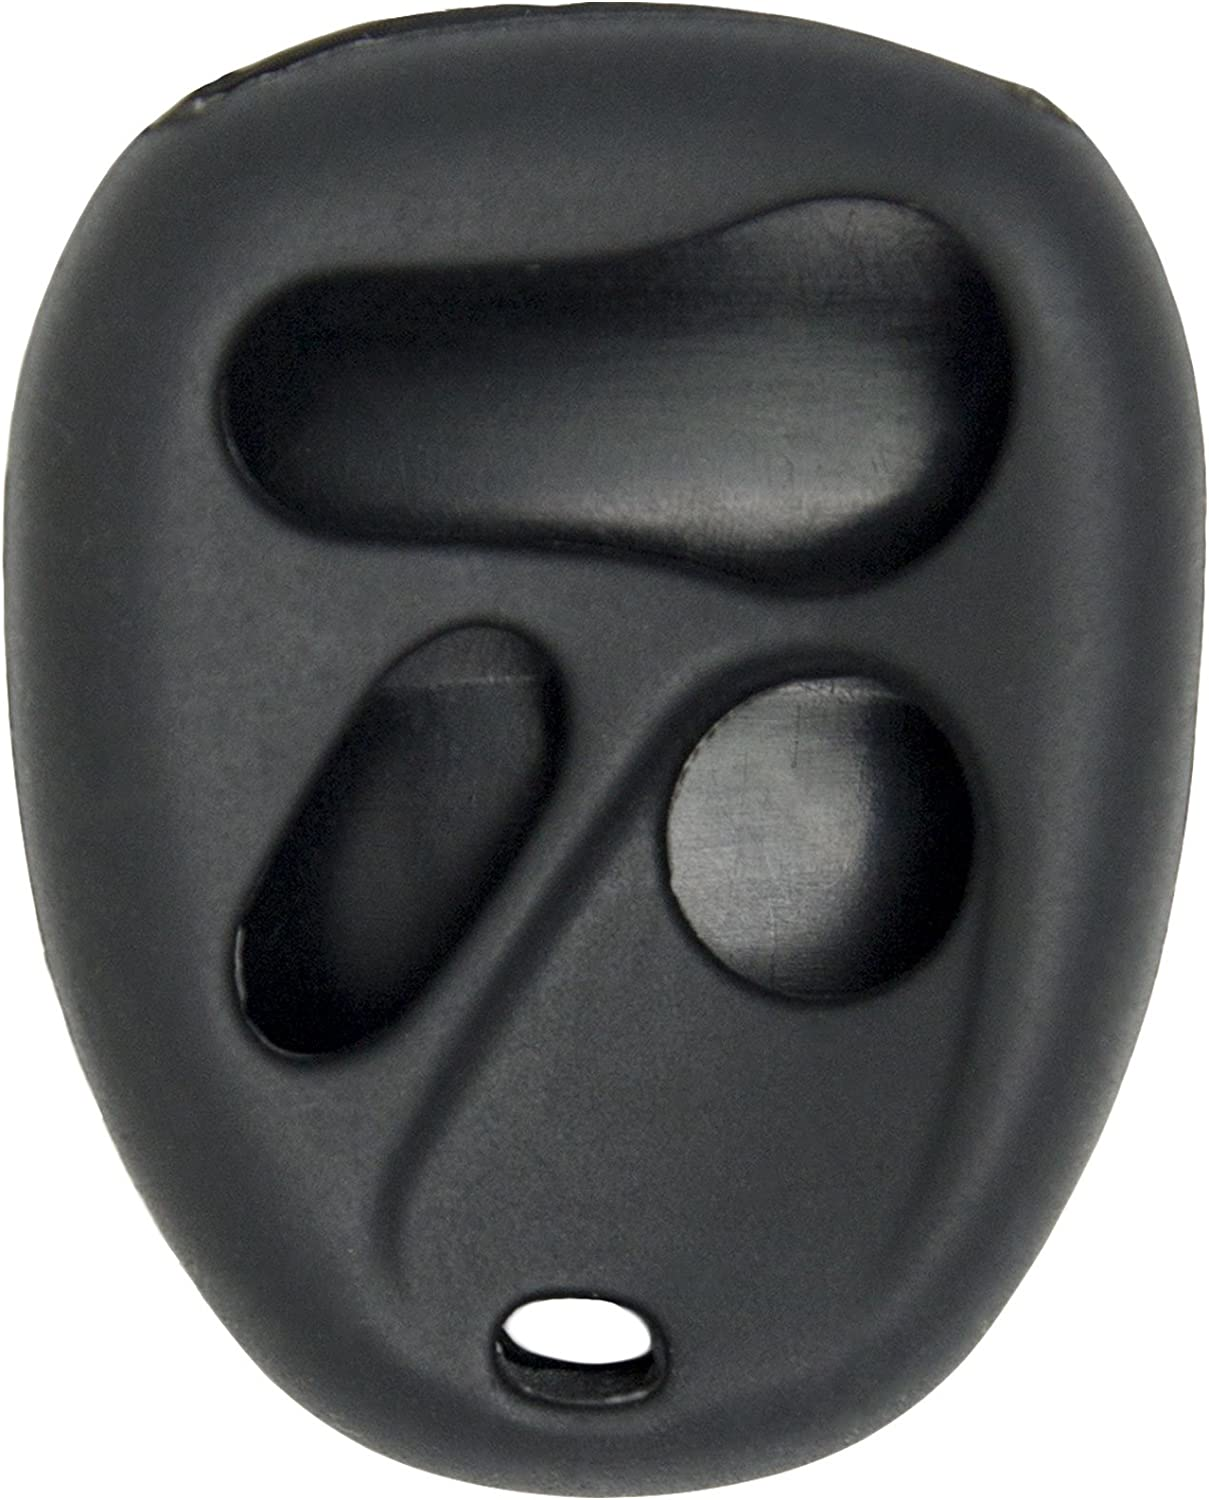 New Silicone Cover Protective Case for Select GM 4 Button Remotes Black